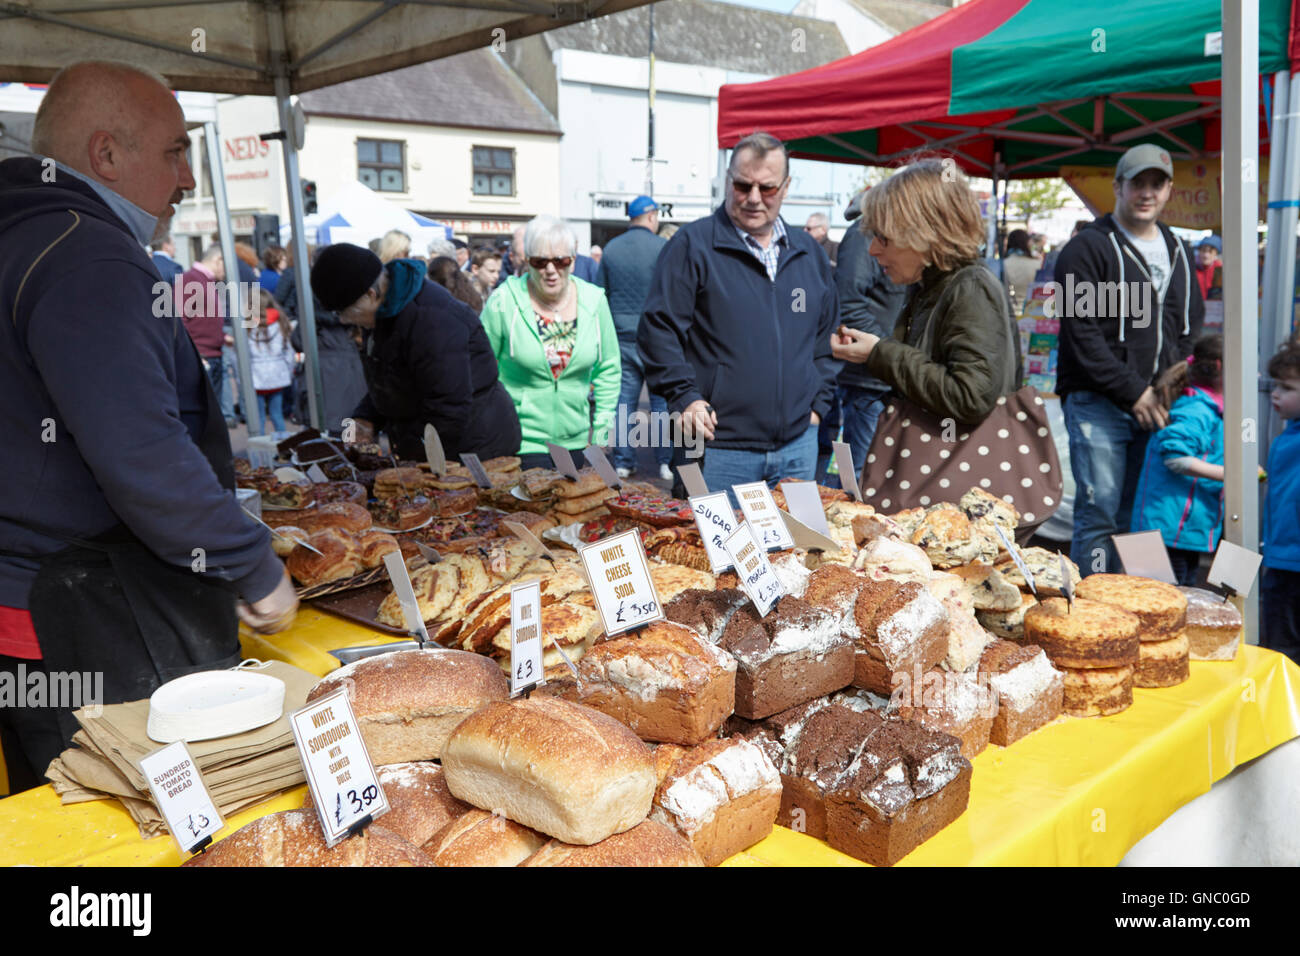 artisan breads stall at a food market in northern ireland Stock Photo